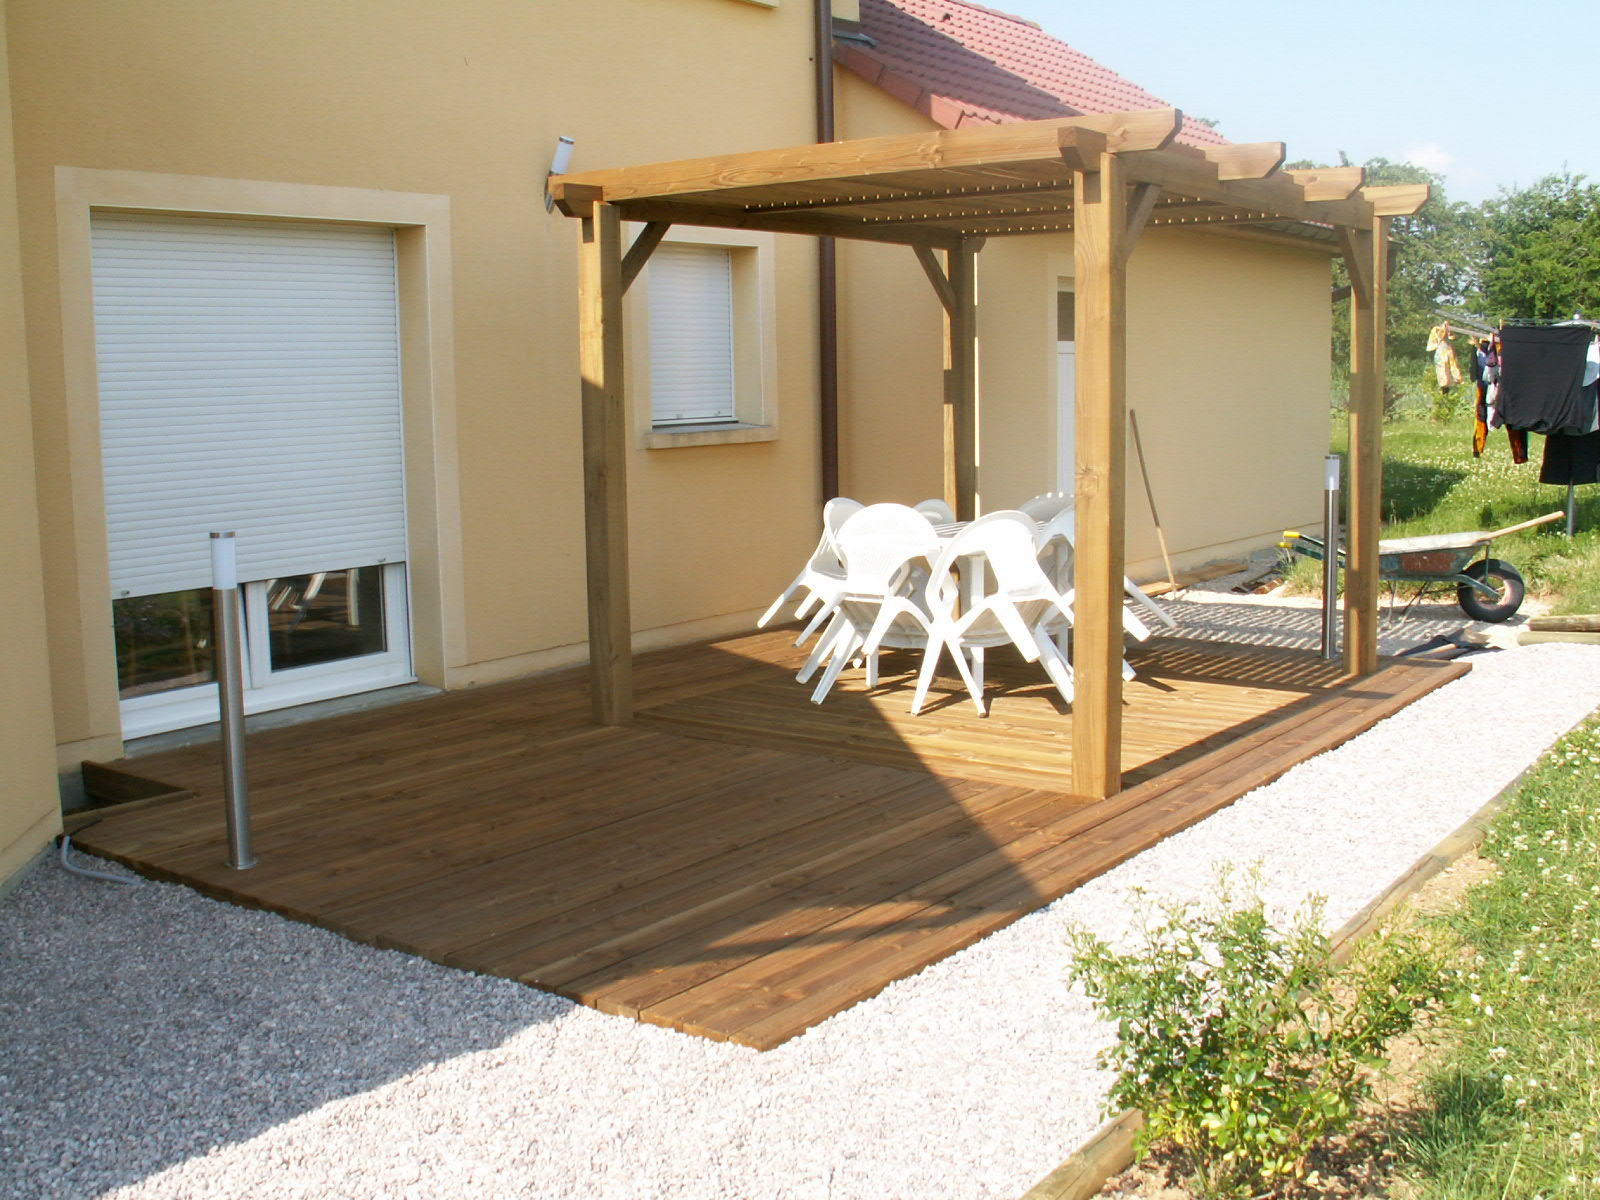 modele de pergola en bois maison design. Black Bedroom Furniture Sets. Home Design Ideas